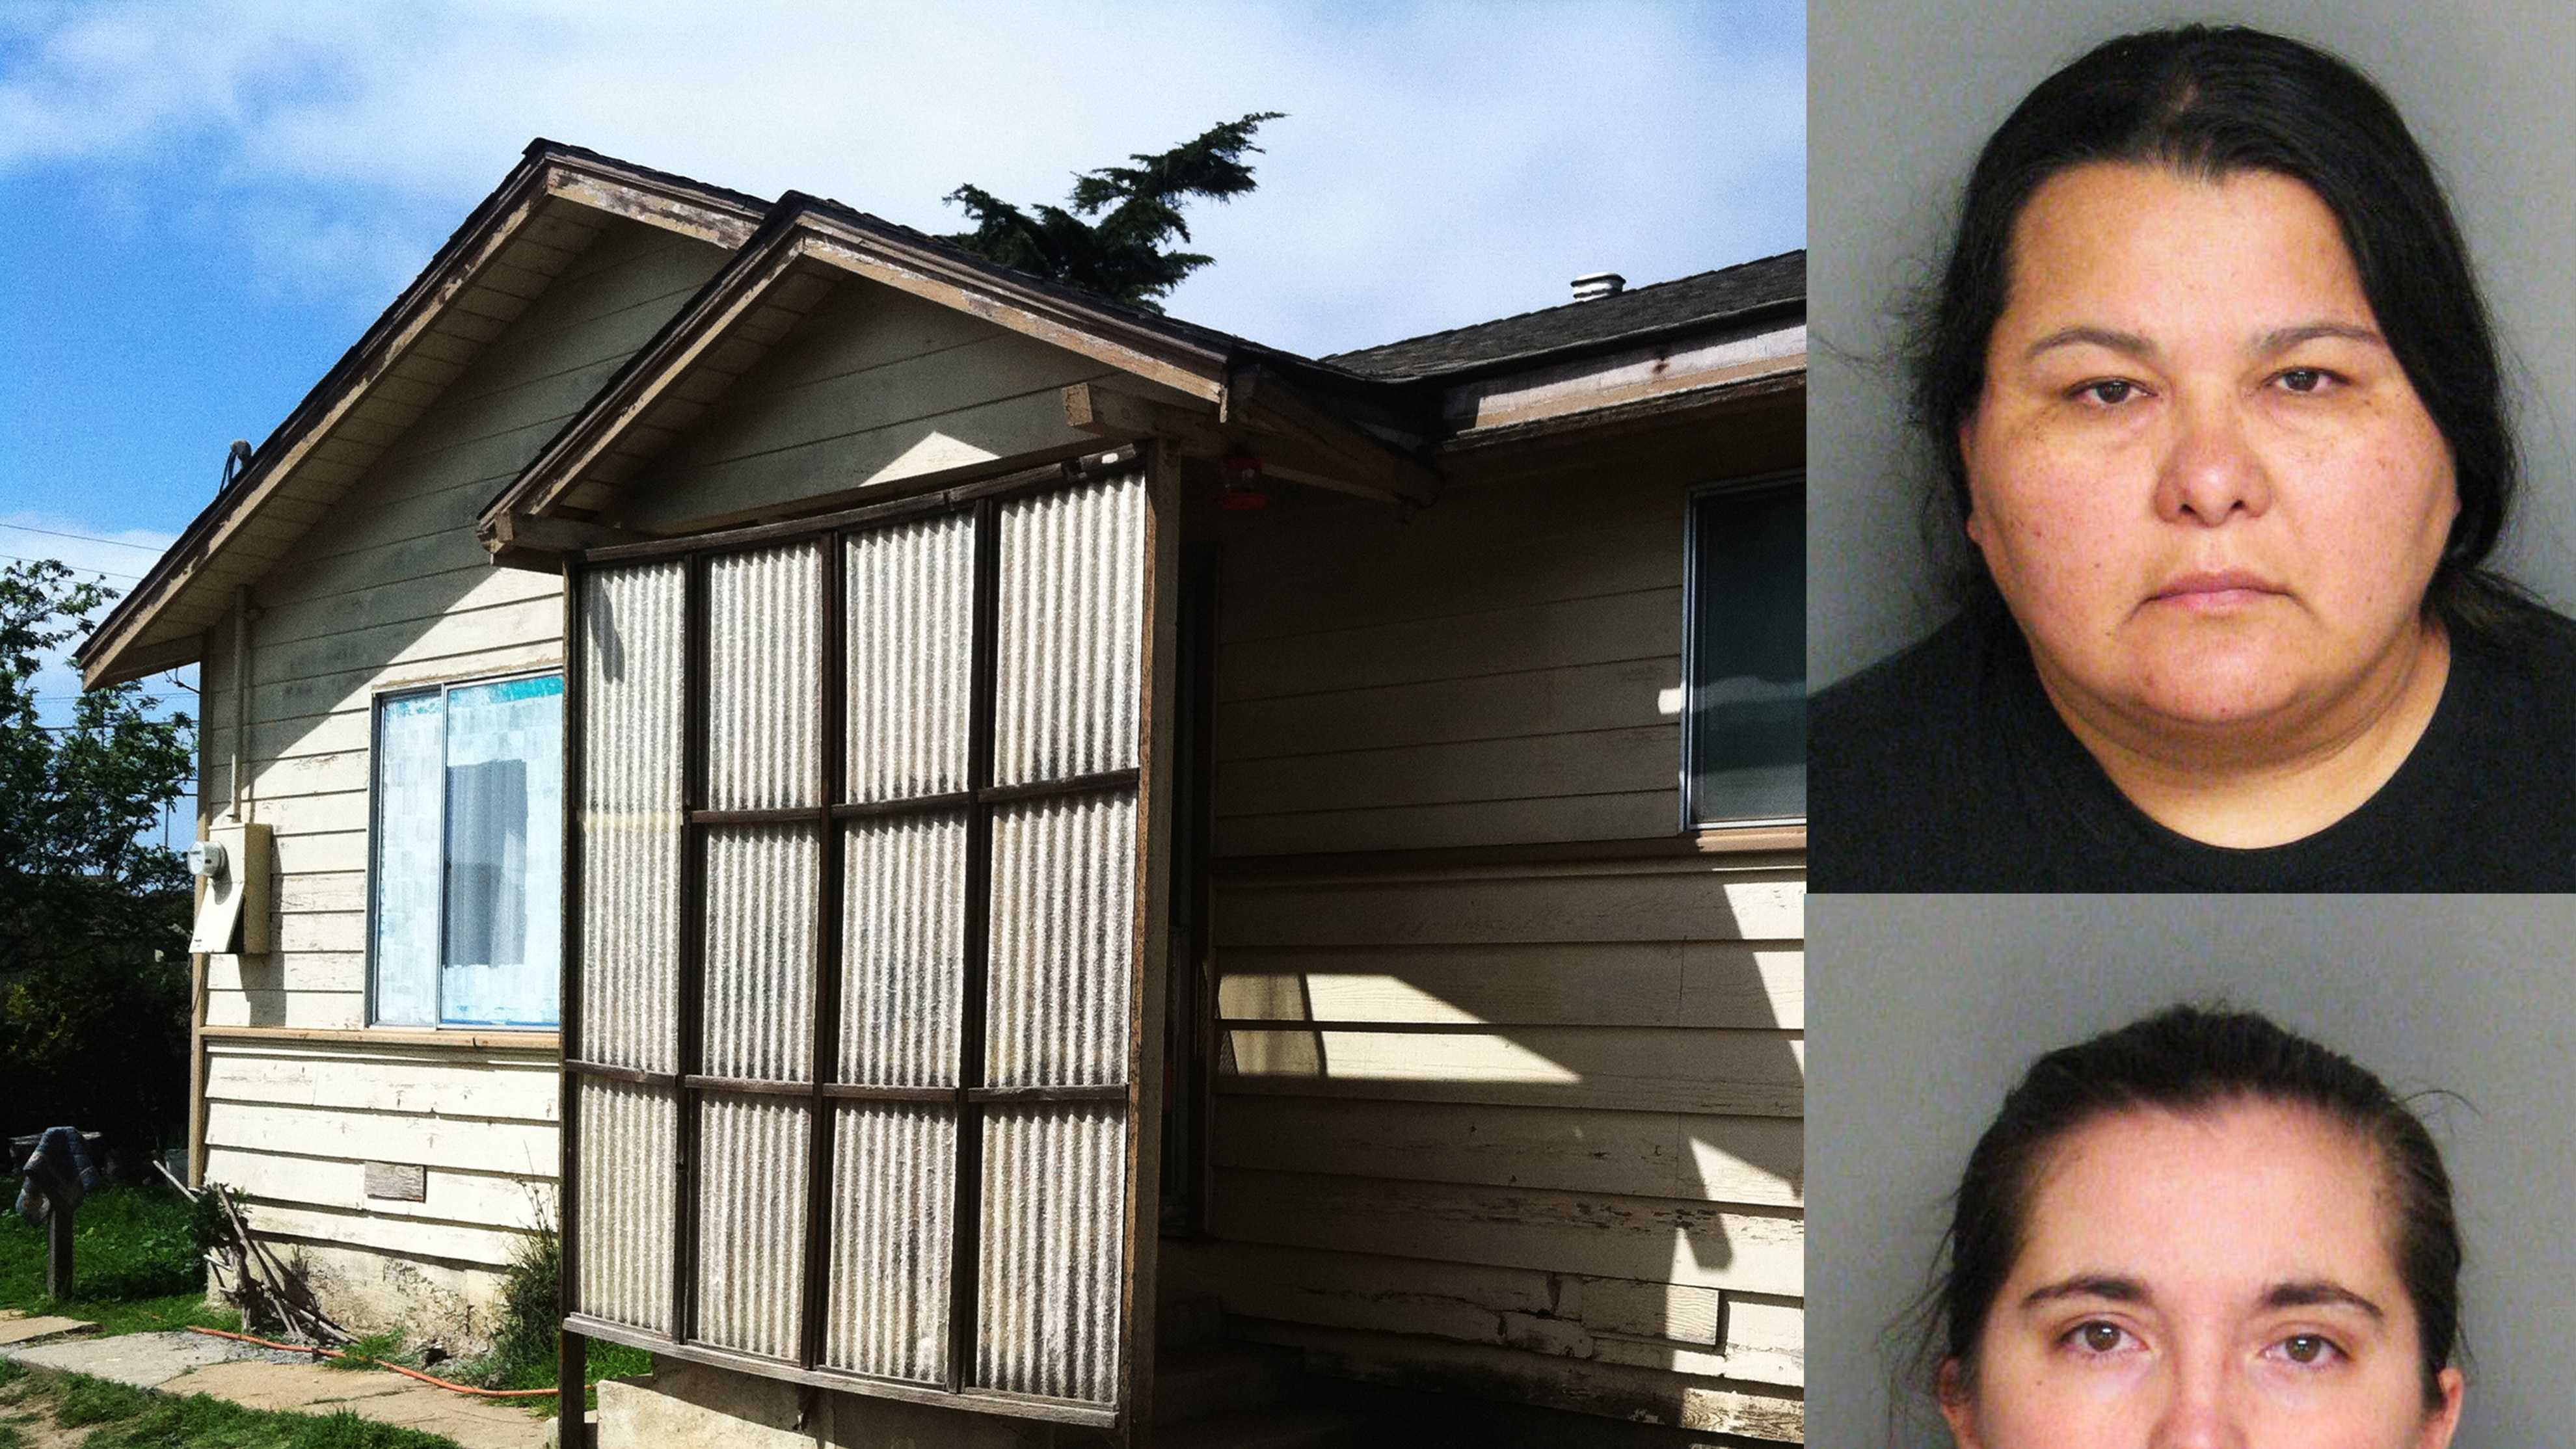 Eraca Craig, bottom, and Christian Deanda, top, lived in this Salinas house with three children.